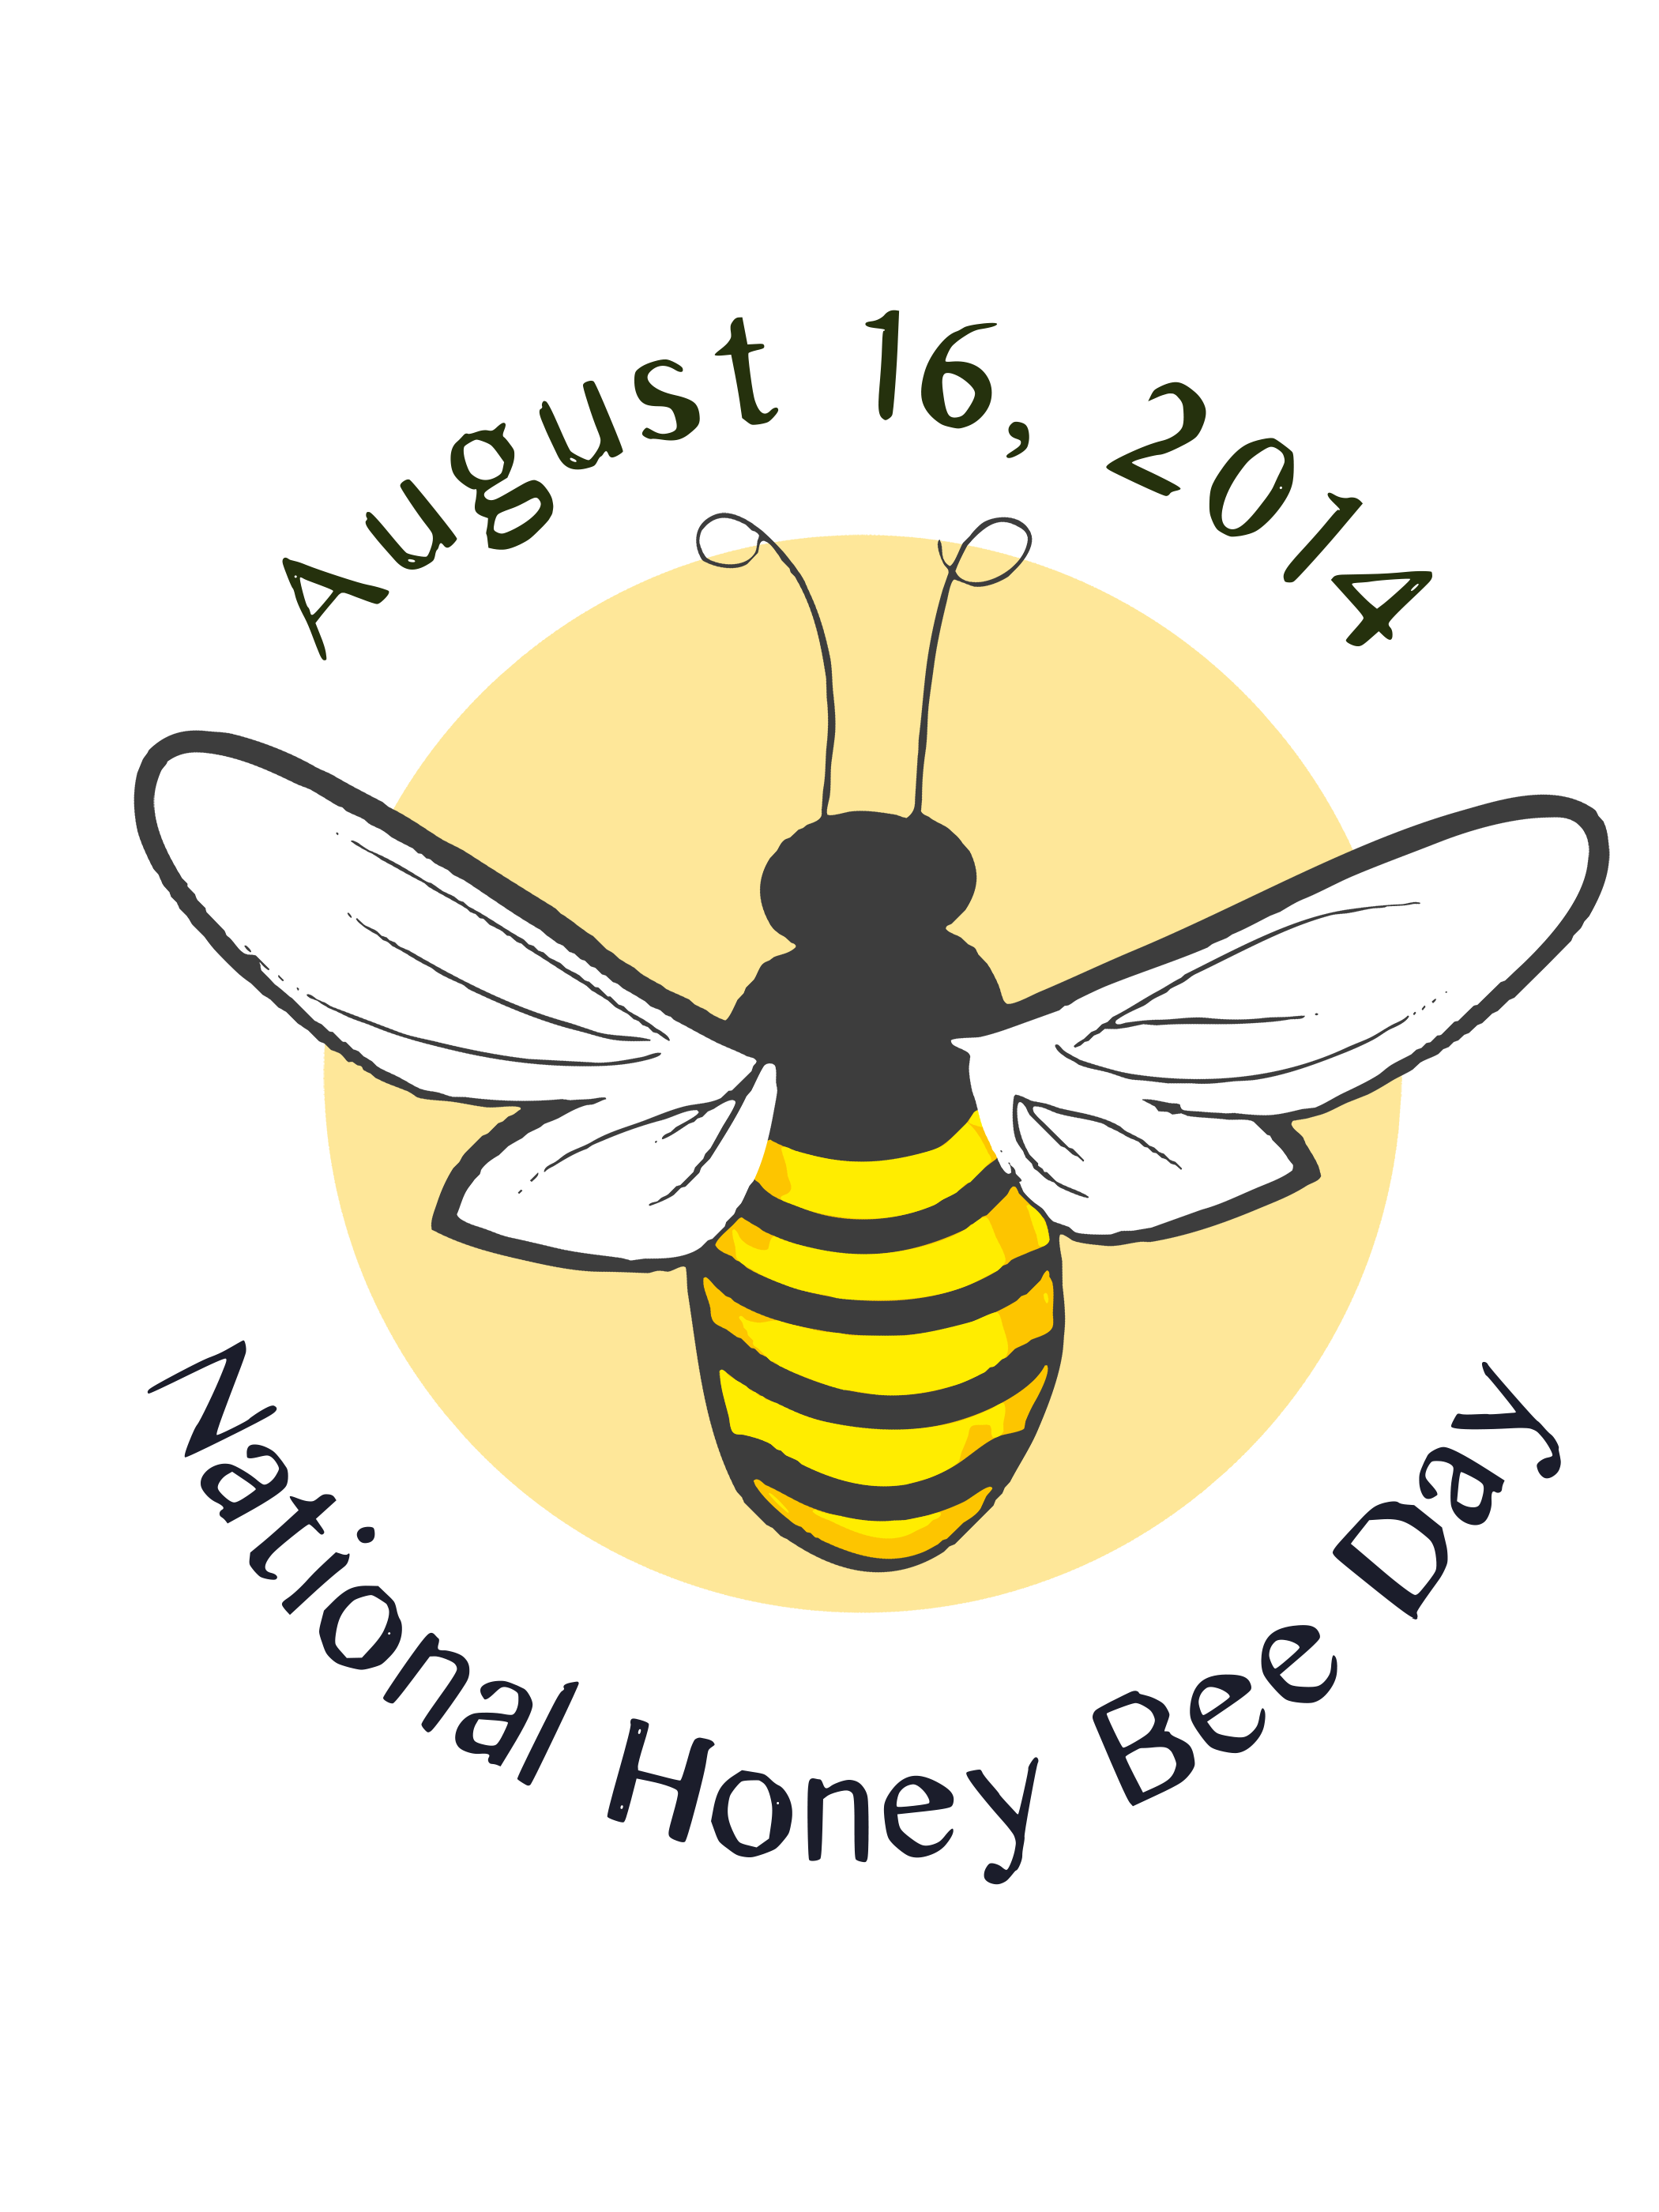 national honey bee day festival saturday august 20th 9 am 1 pm